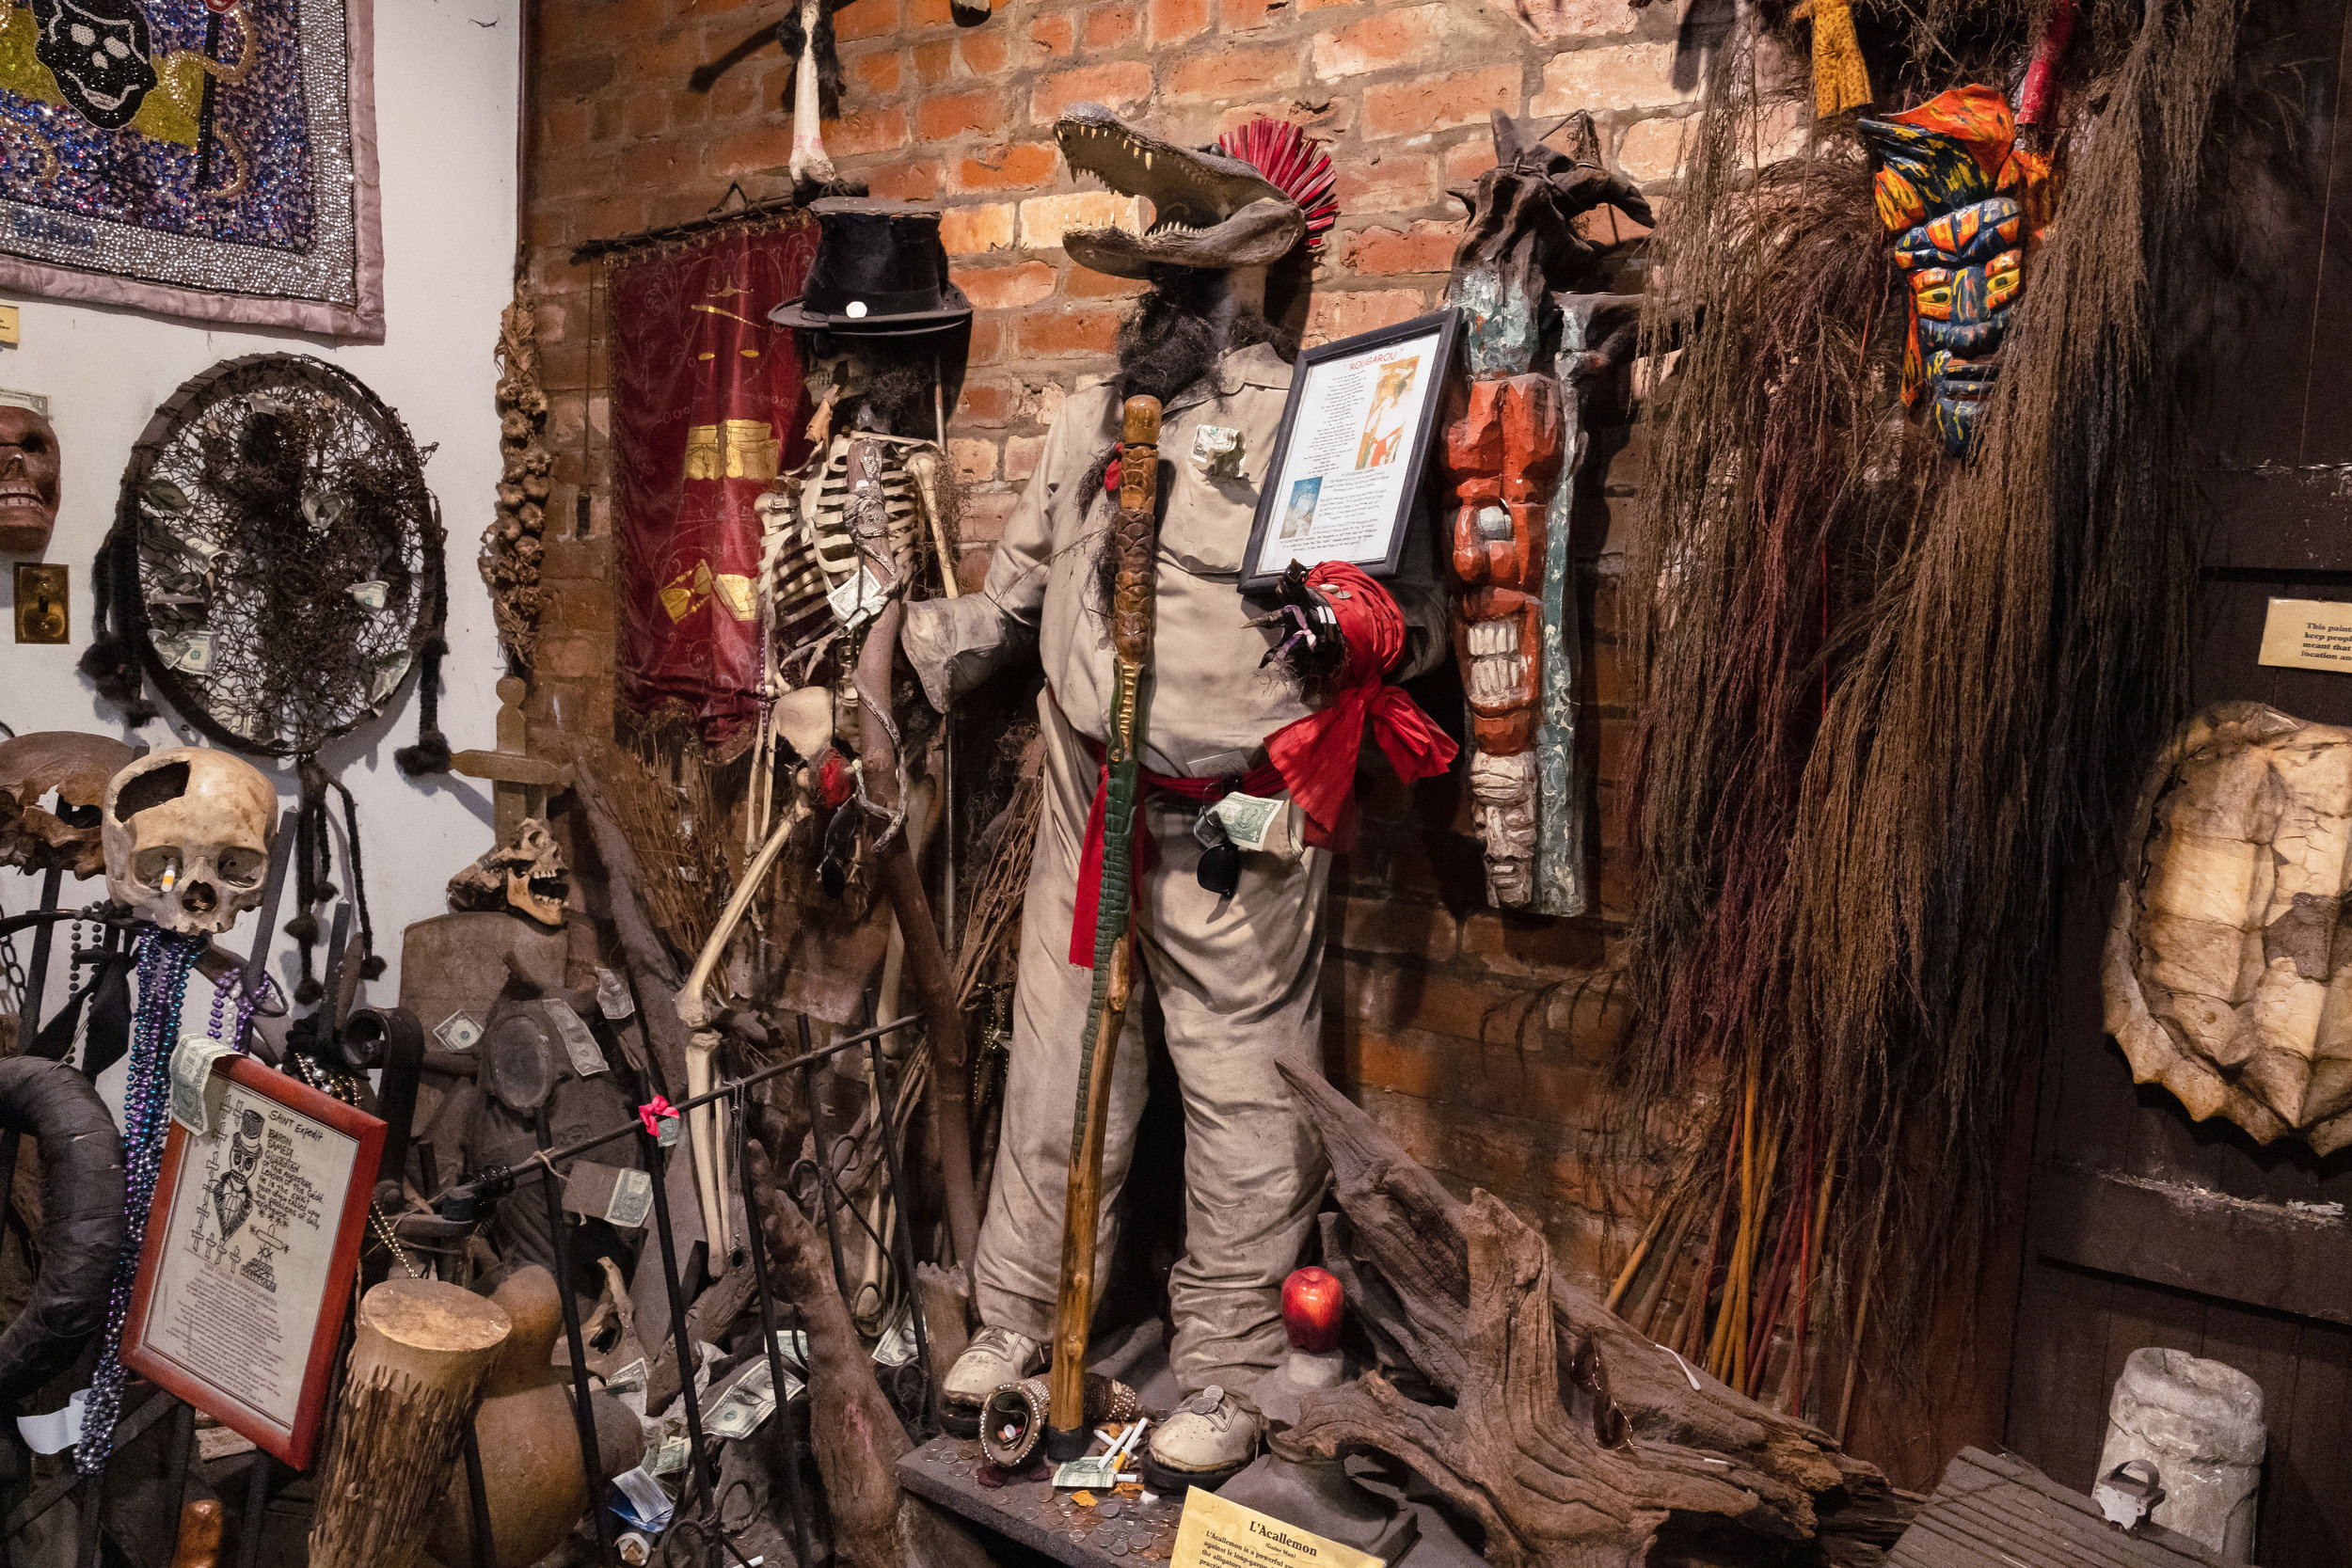 curious nola - Explore one of New Orlean's most curious identities as Voodoo capital of the United States.